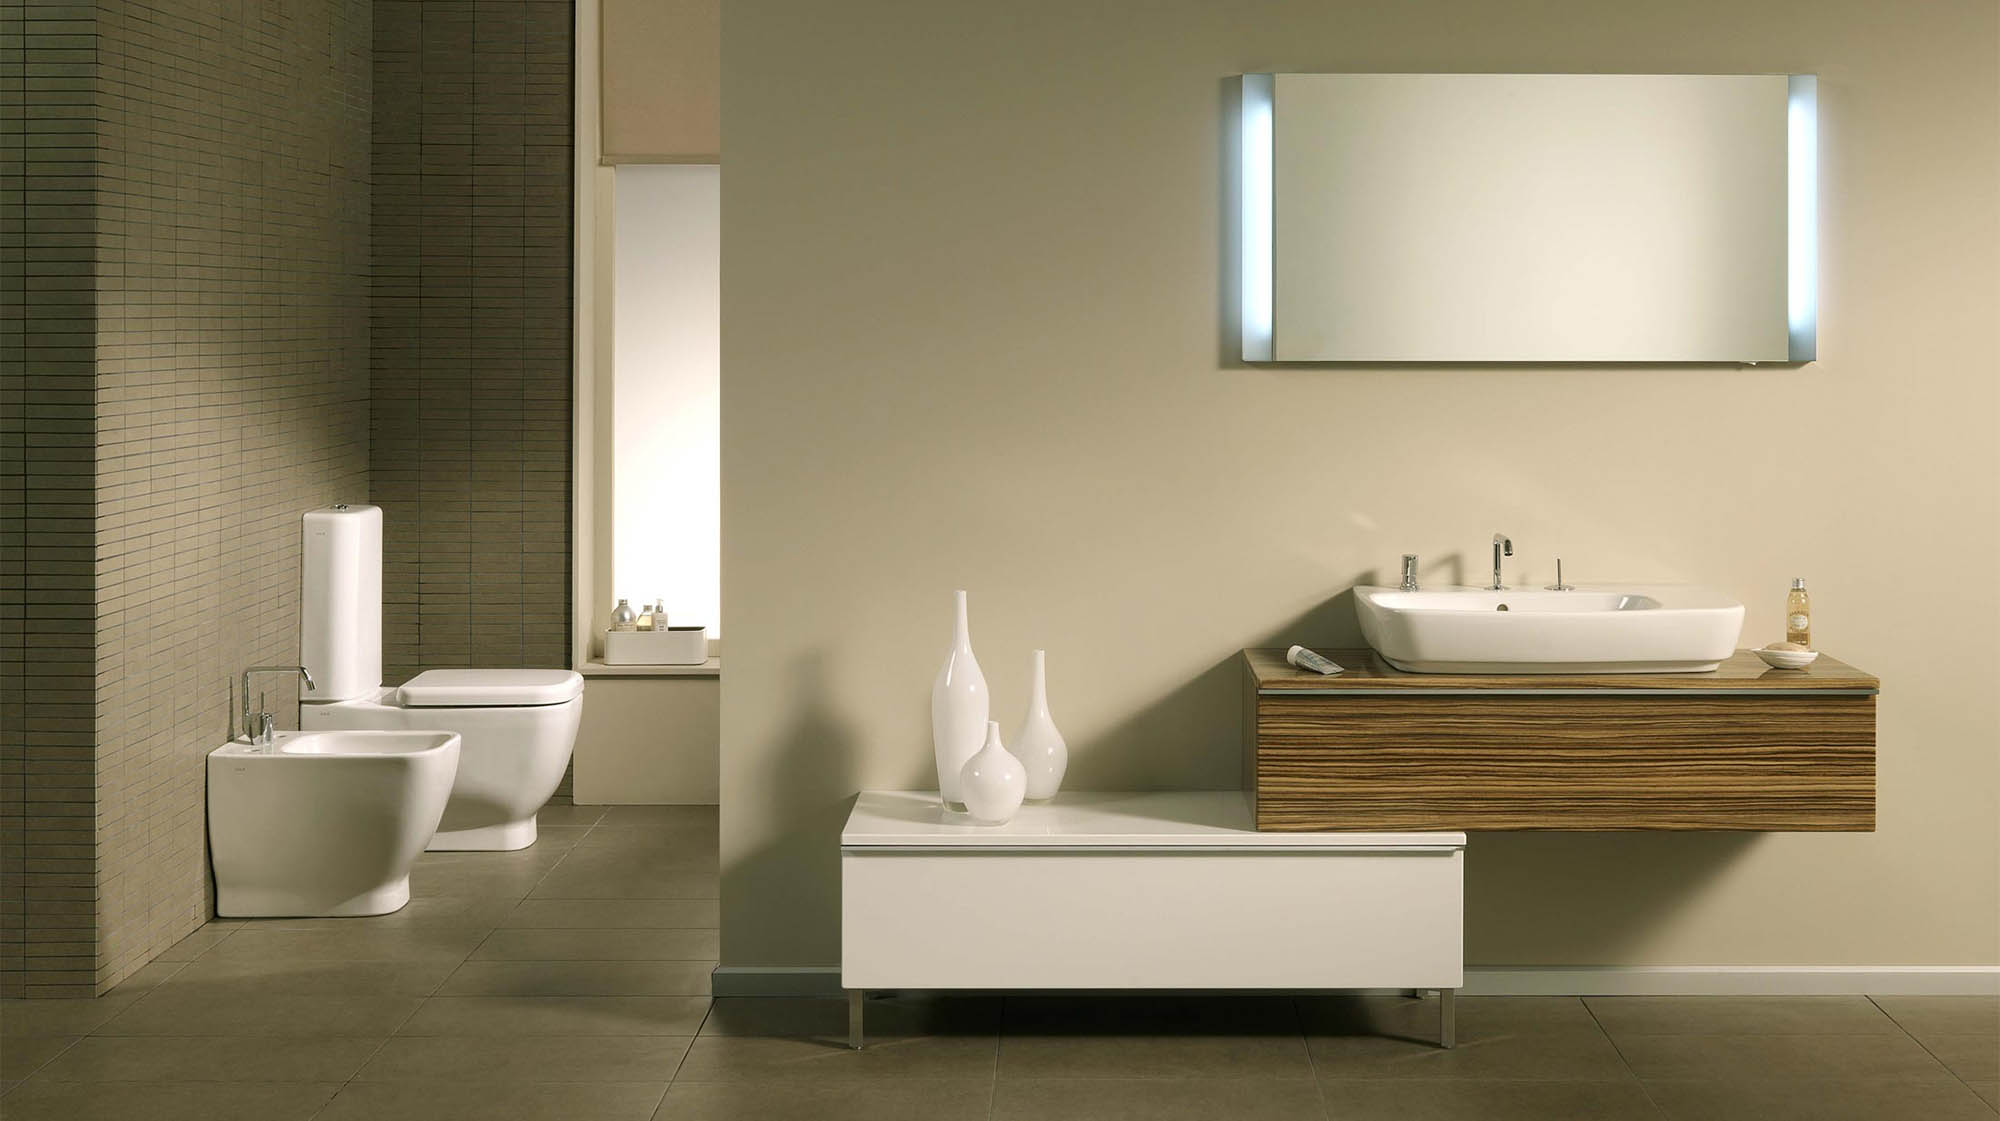 Matching bidet and toilet in this beautiful modern master bathroom.